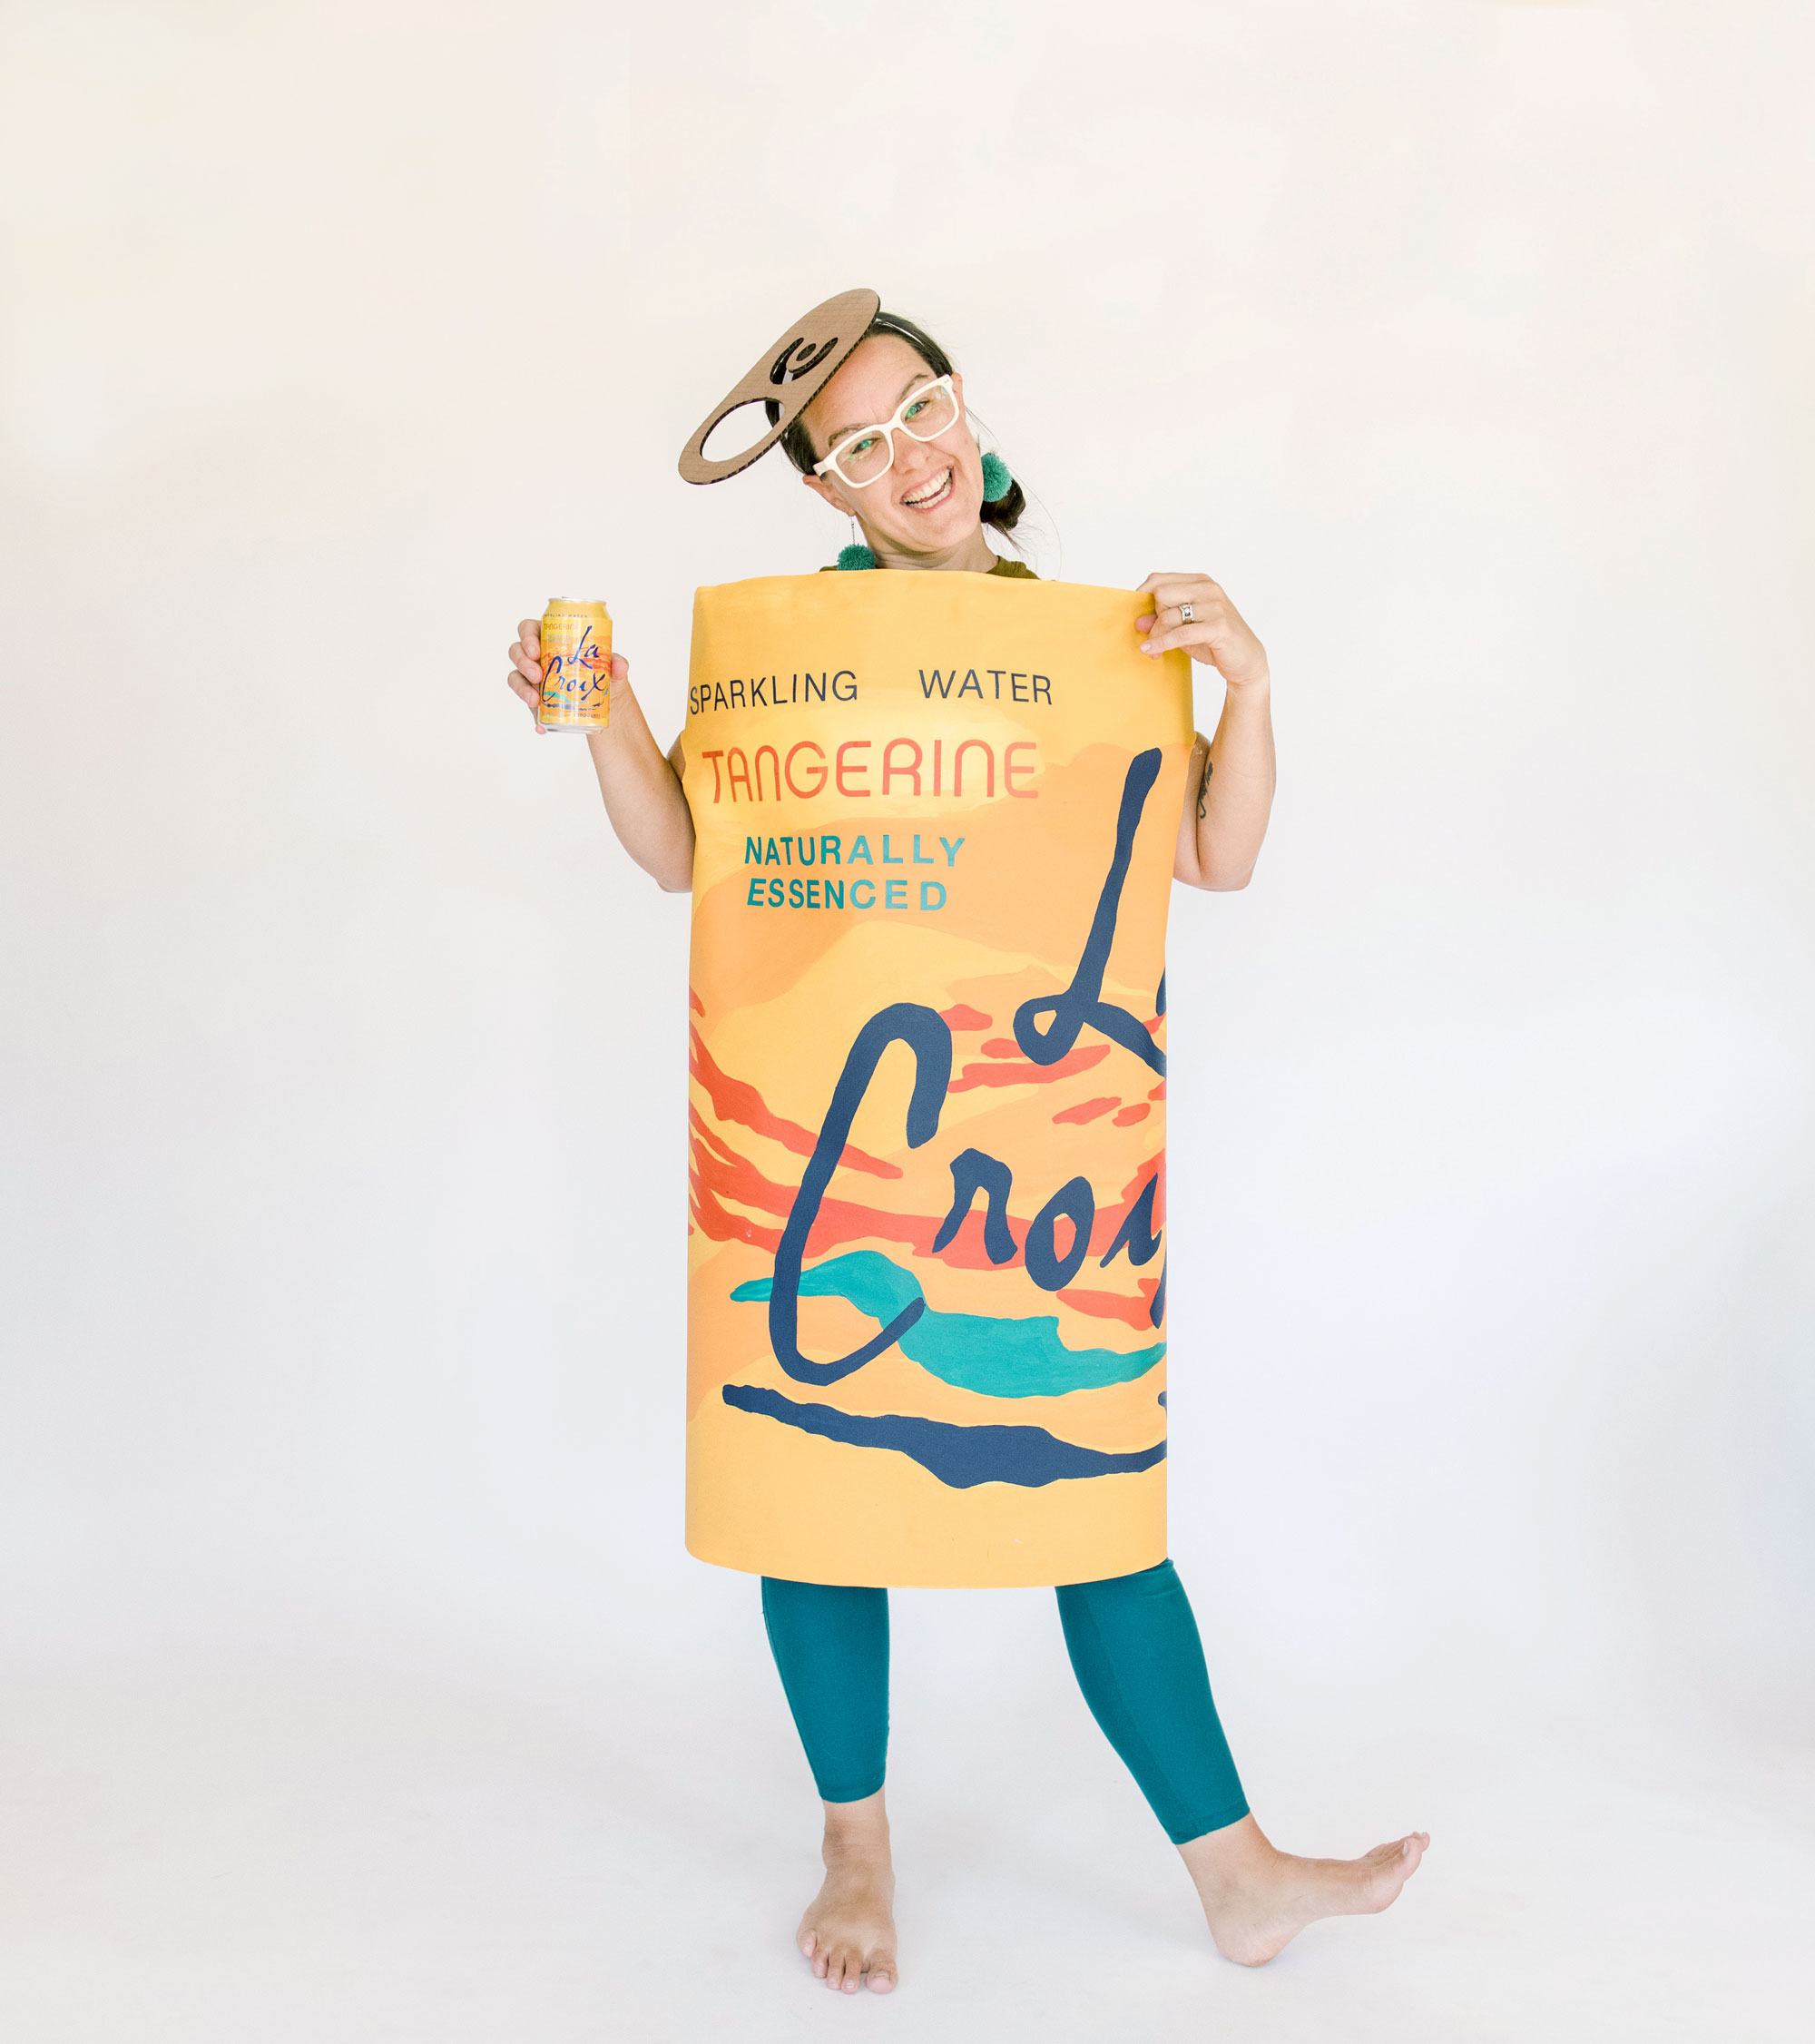 LaCroix costume DIY, LaCroix can costume, How to make a LaCroix costume, halloween costume ideas, How to make a LaCroix costume for Halloween